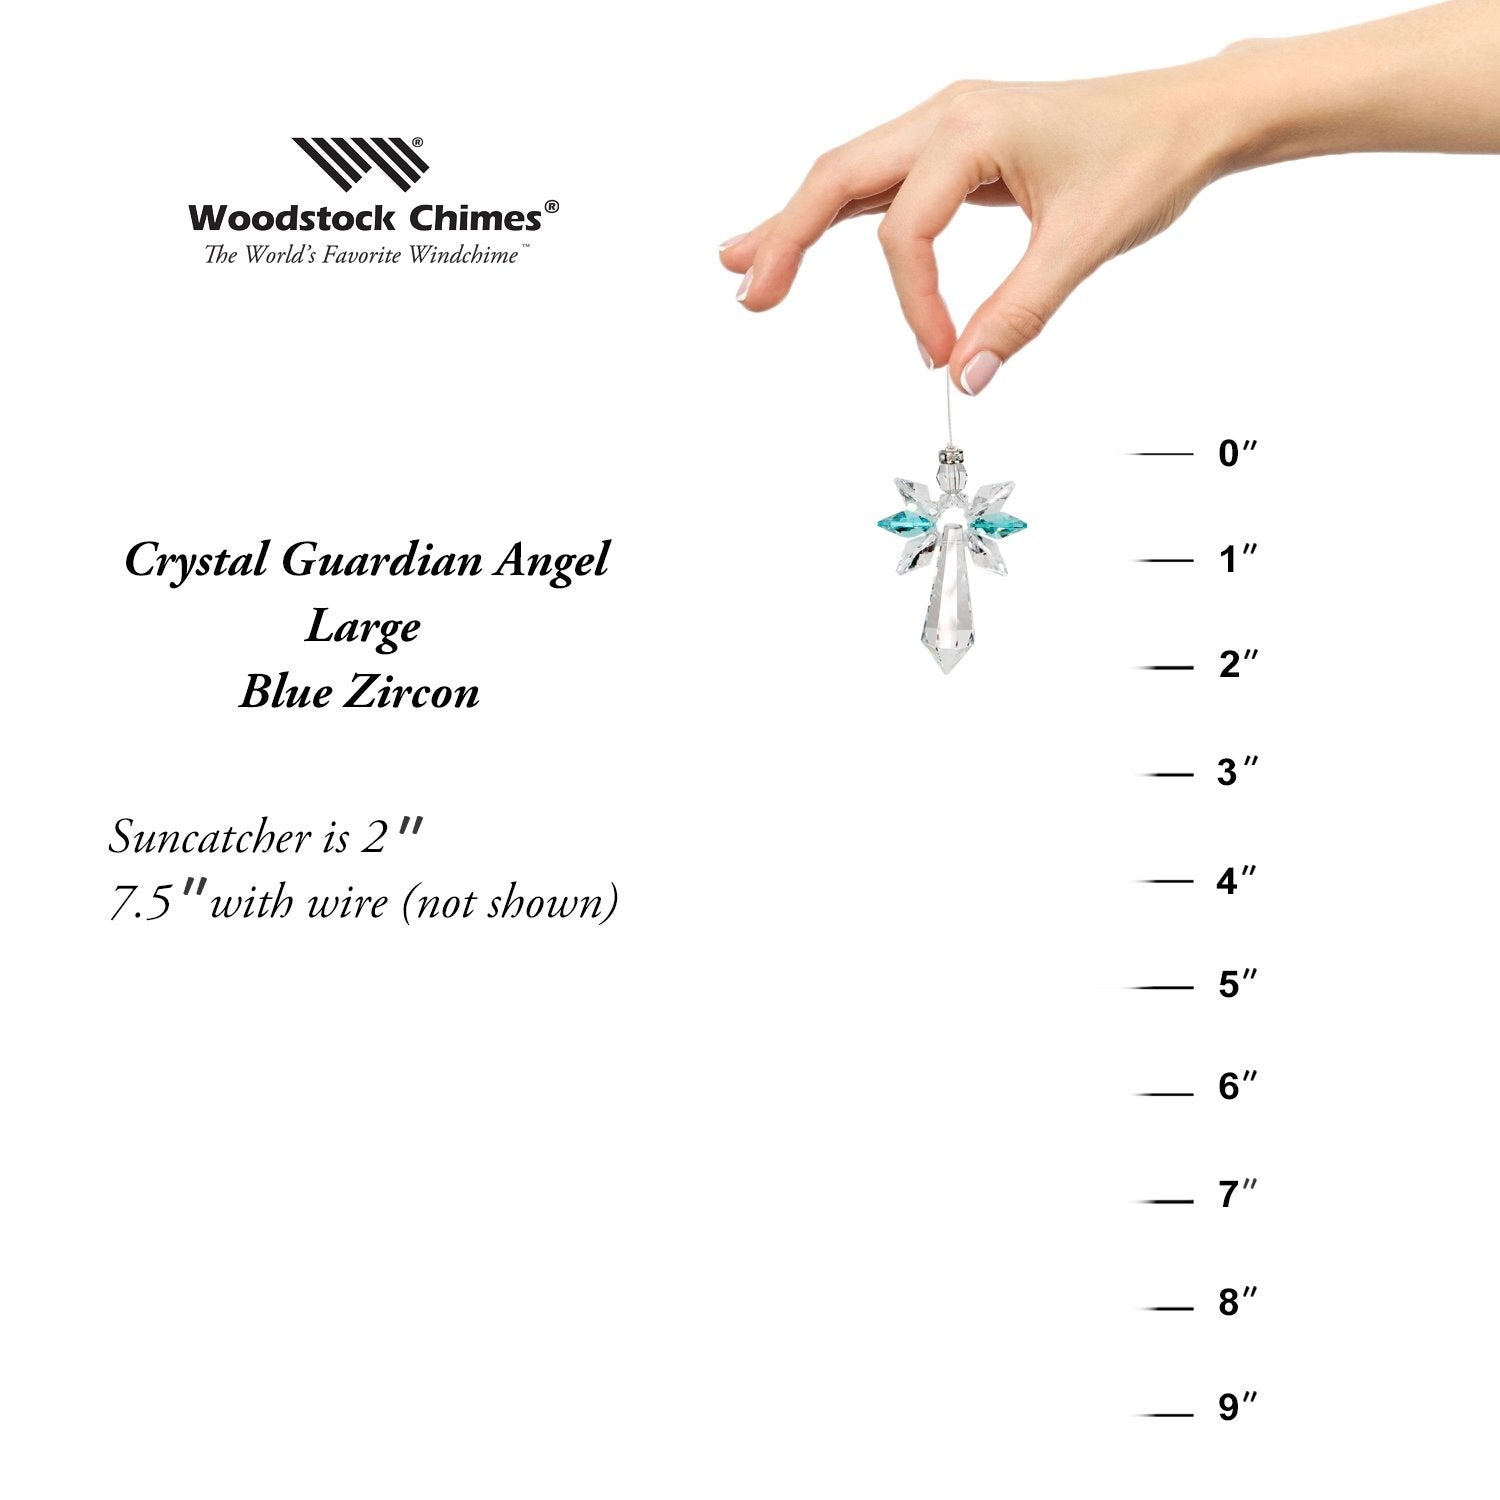 Crystal Guardian Angel Suncatcher - Large, Blue Zircon proportion image